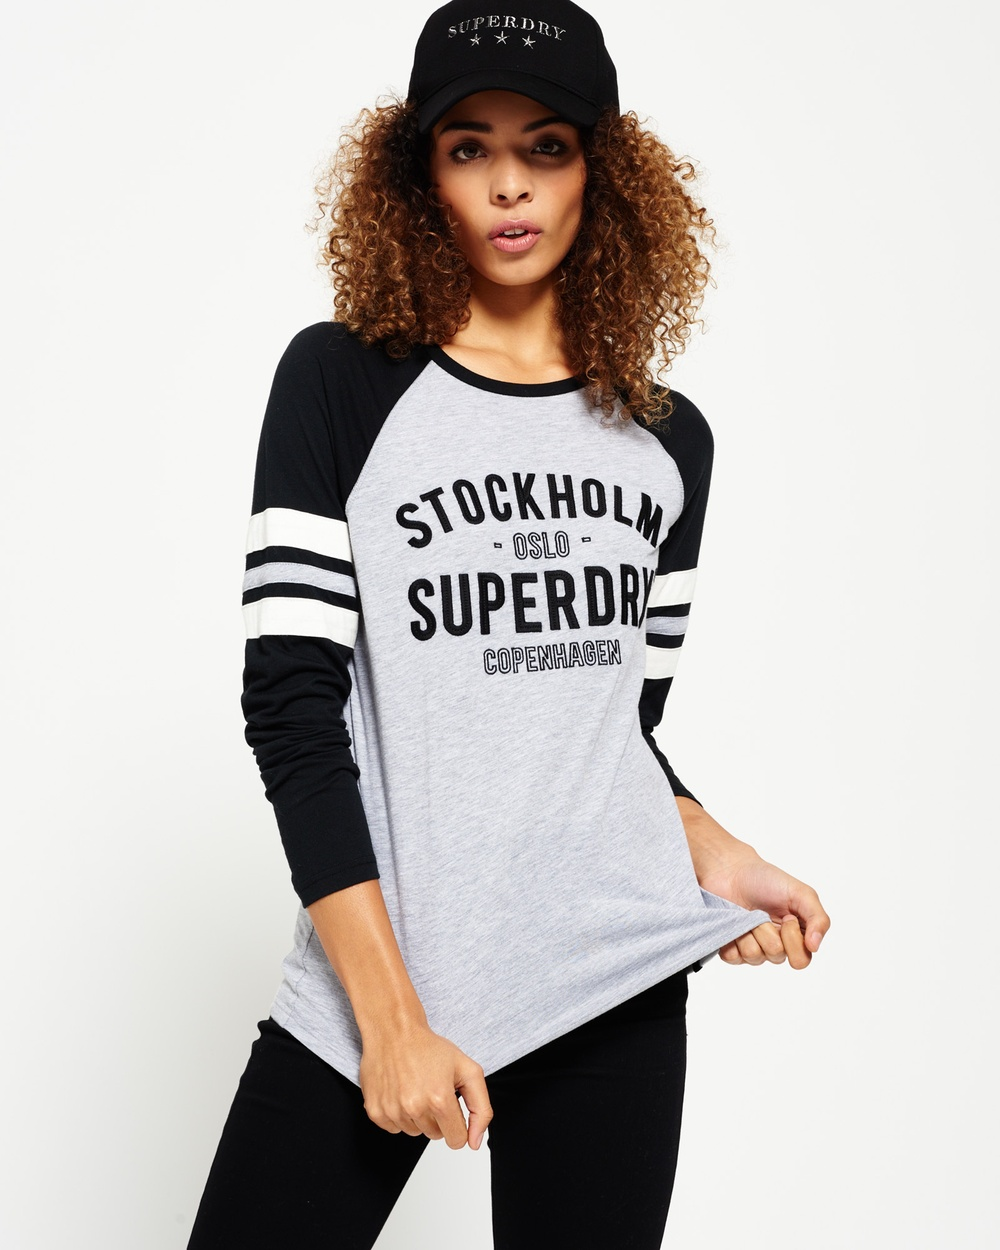 Superdry Applique Football Raglan Top Tops Black/Du Jour Grey Marl/Ecru Applique Football Raglan Top